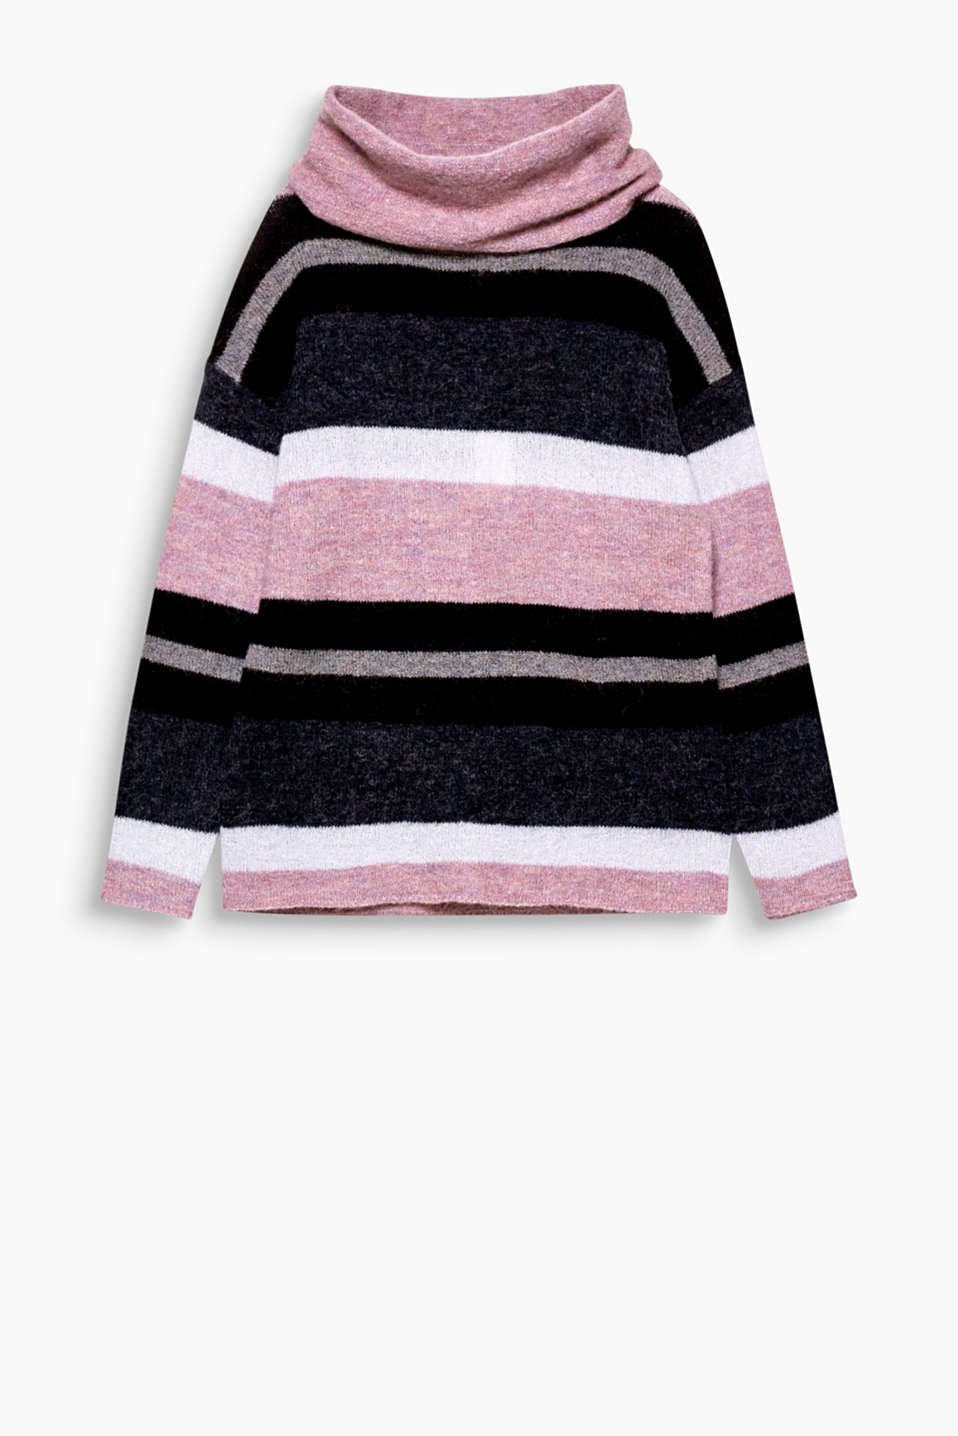 Cosy striped jumper with cold days: mohair and elastane make this jumper so light and comfortable!